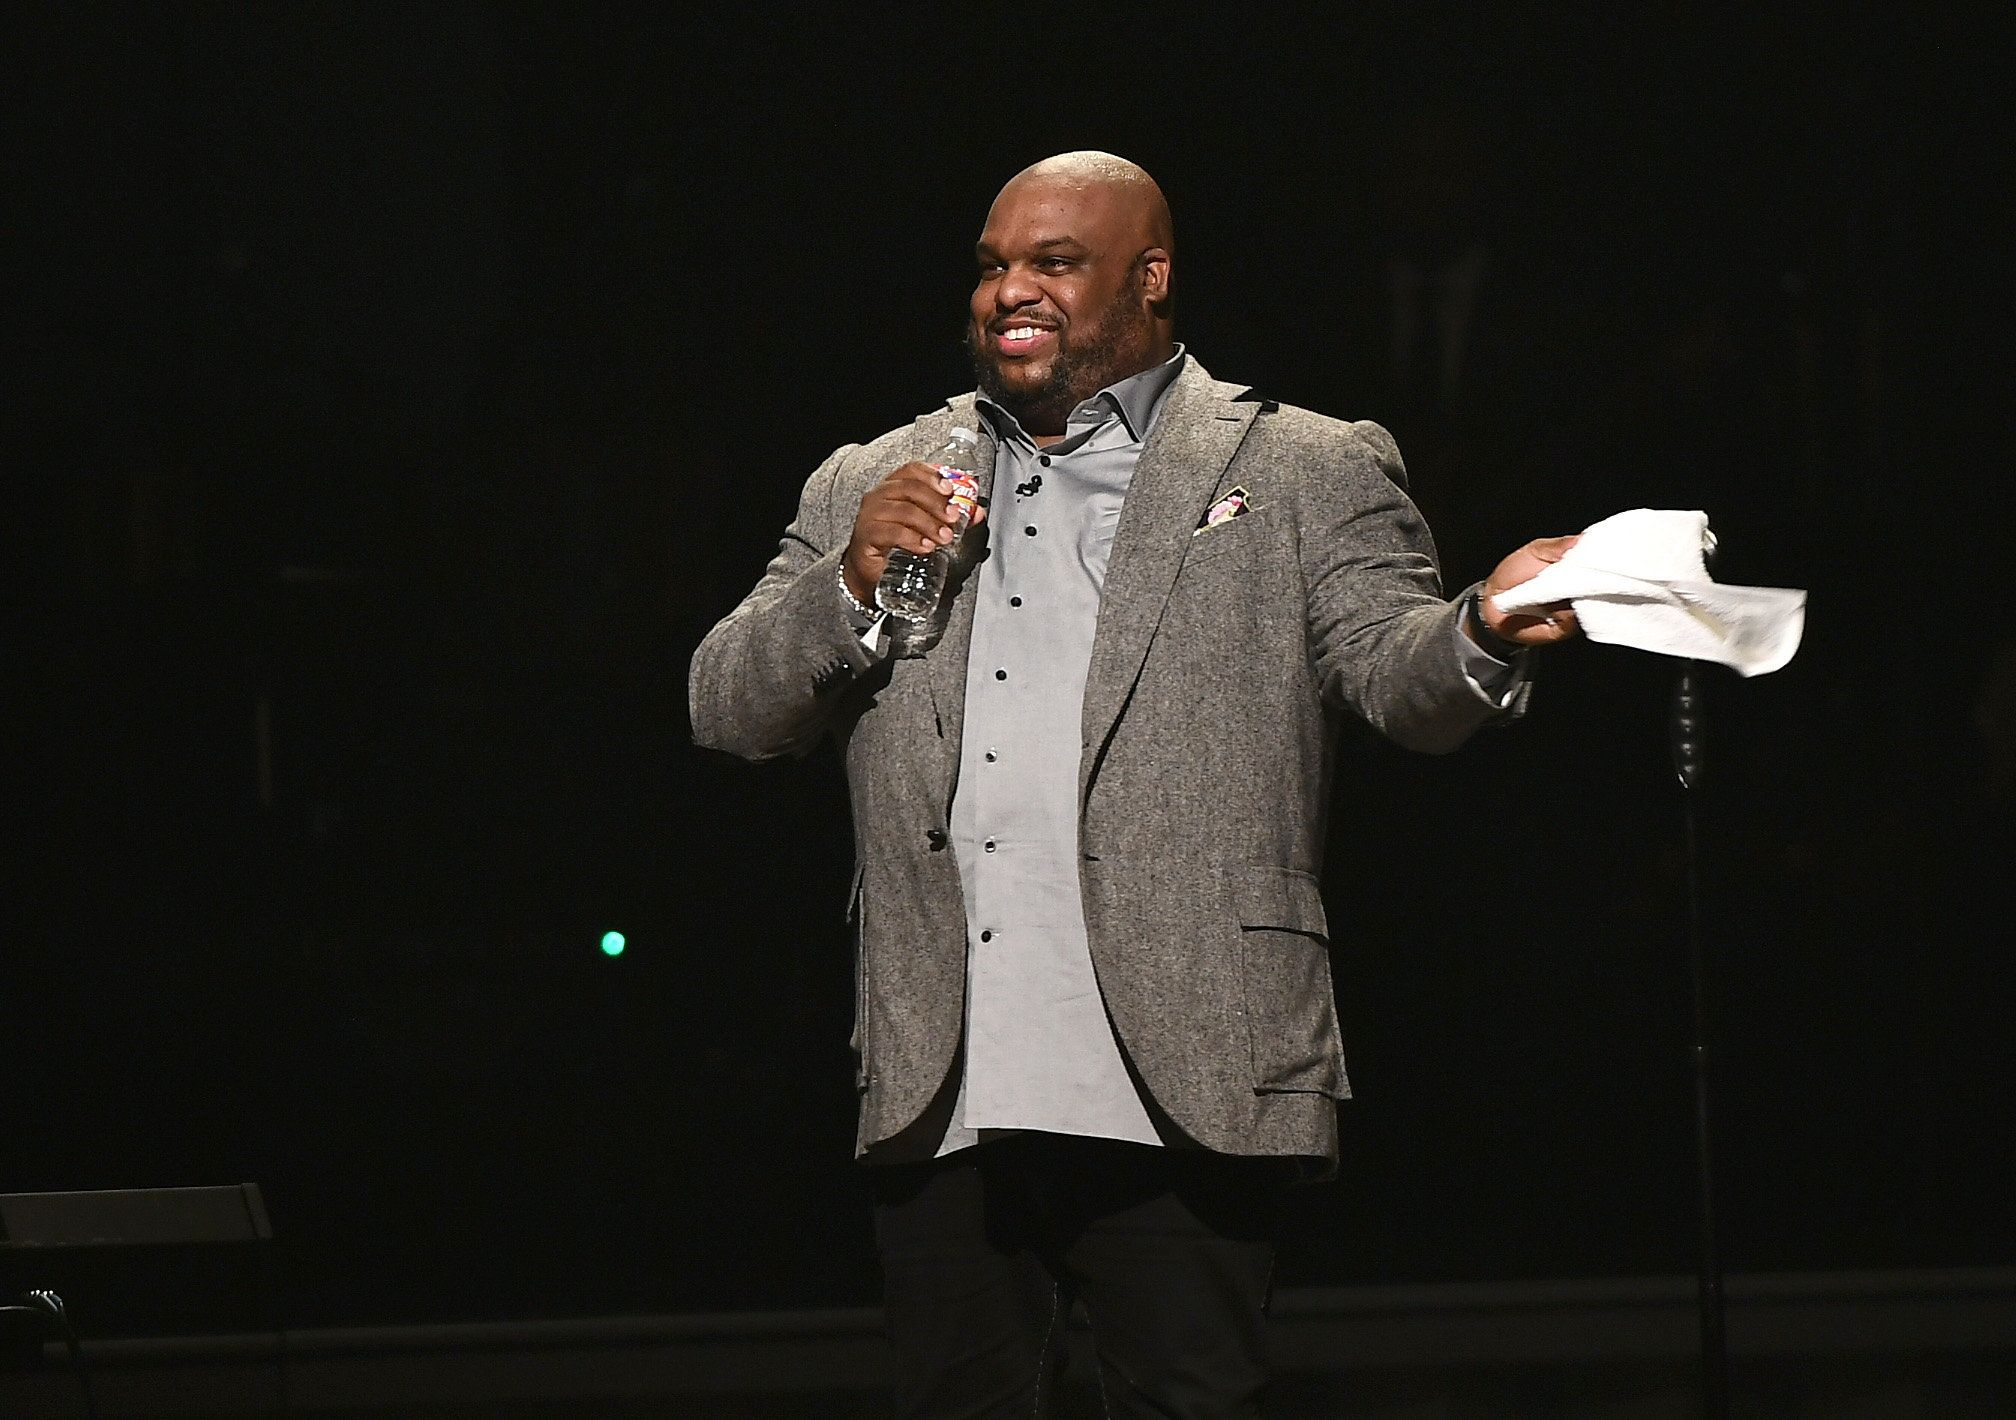 HOUSTON, TX - FEBRUARY 03:  Pastor John Gray speaks onstage during the  BET Presents Super Bowl Gospel attends the BET Presents Super Bowl Gospel Celebration at Lakewood Church on February 3, 2017 in Houston, Texas.  (Photo by Marcus Ingram/Getty Images for BET)